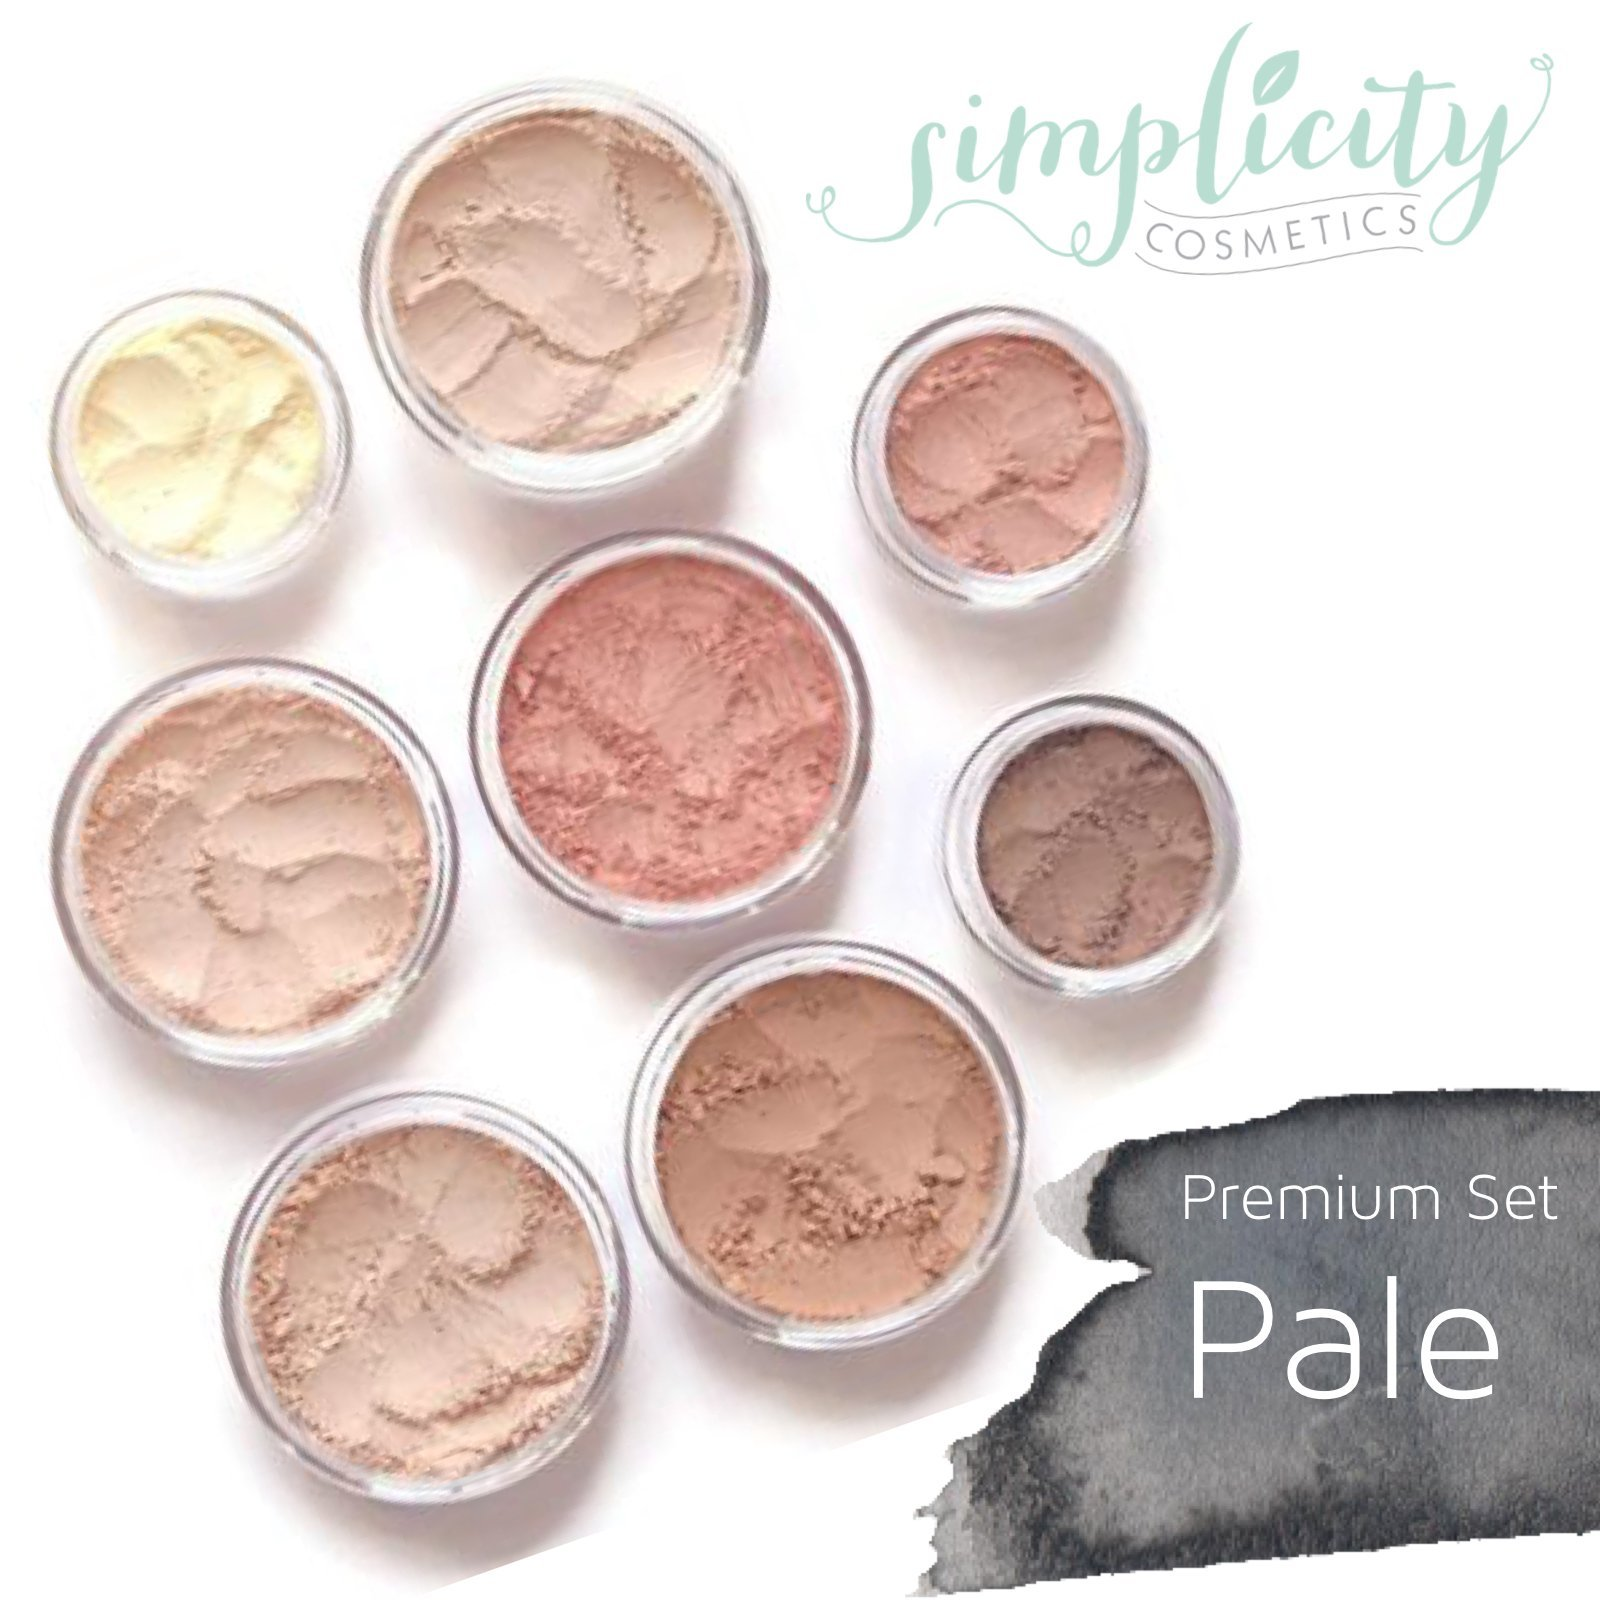 Mineral Makeup Premium Set - Pale | Blush | Foundation | Sheer Powder | Eyeshadow | Bronzer | Under Eye Concealer | Starter Set